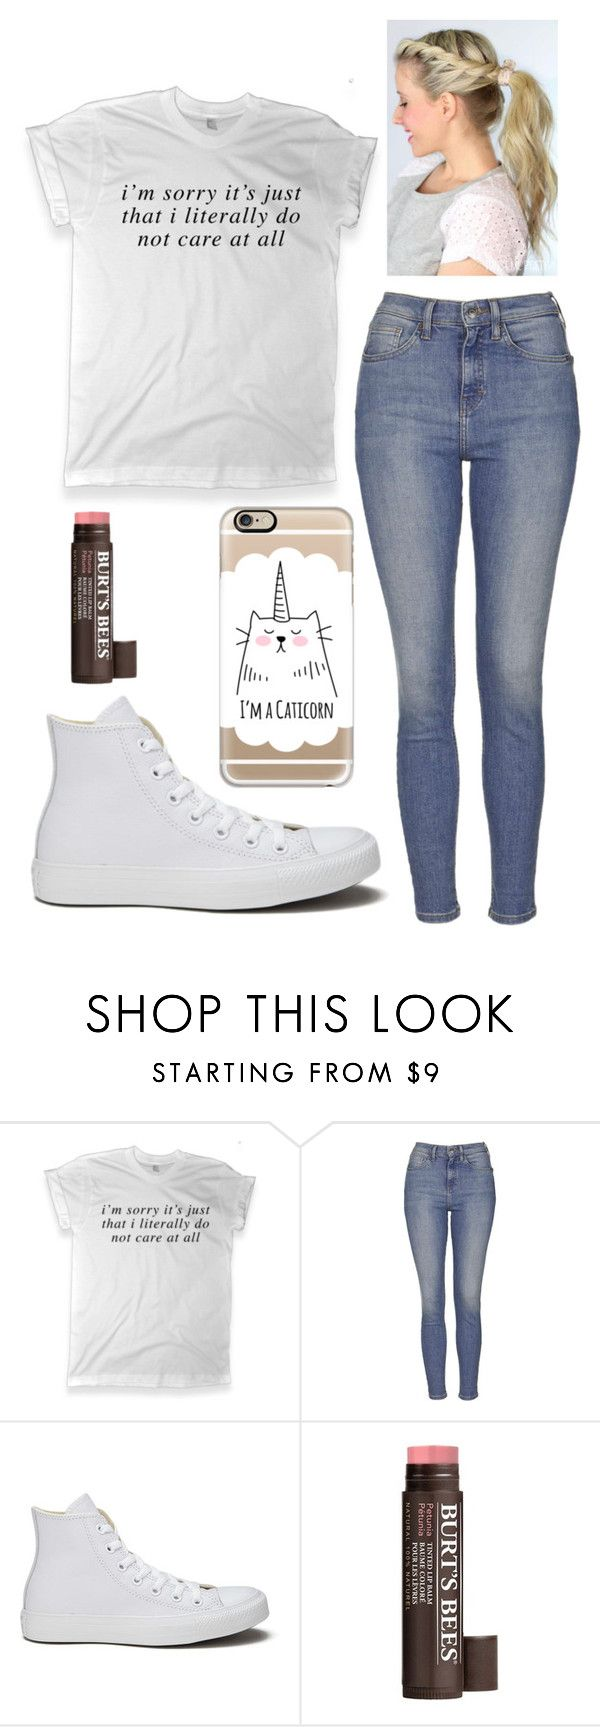 """""""Monday Outfit """" by dreamsofwonderlandx ❤ liked on Polyvore featuring Topshop, Converse, Burt's Bees, Casetify, women's clothing, women's fashion, women, female, woman and misses"""